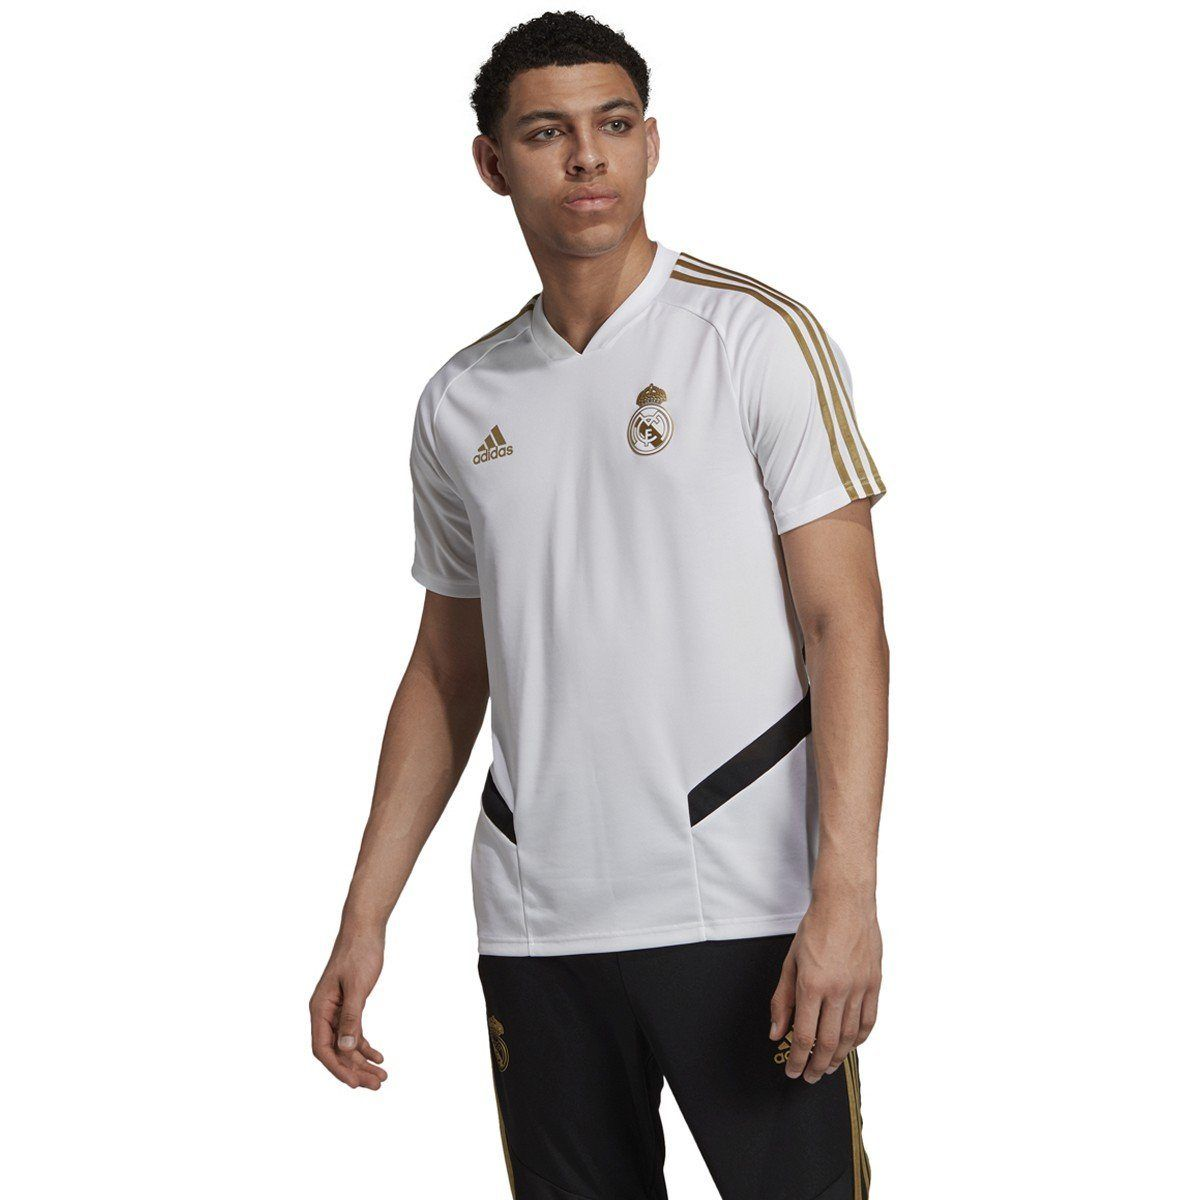 Adidas Men S Real Madrid Training Jersey Dx7849 In 2020 Real Madrid Training Real Madrid Adidas Men